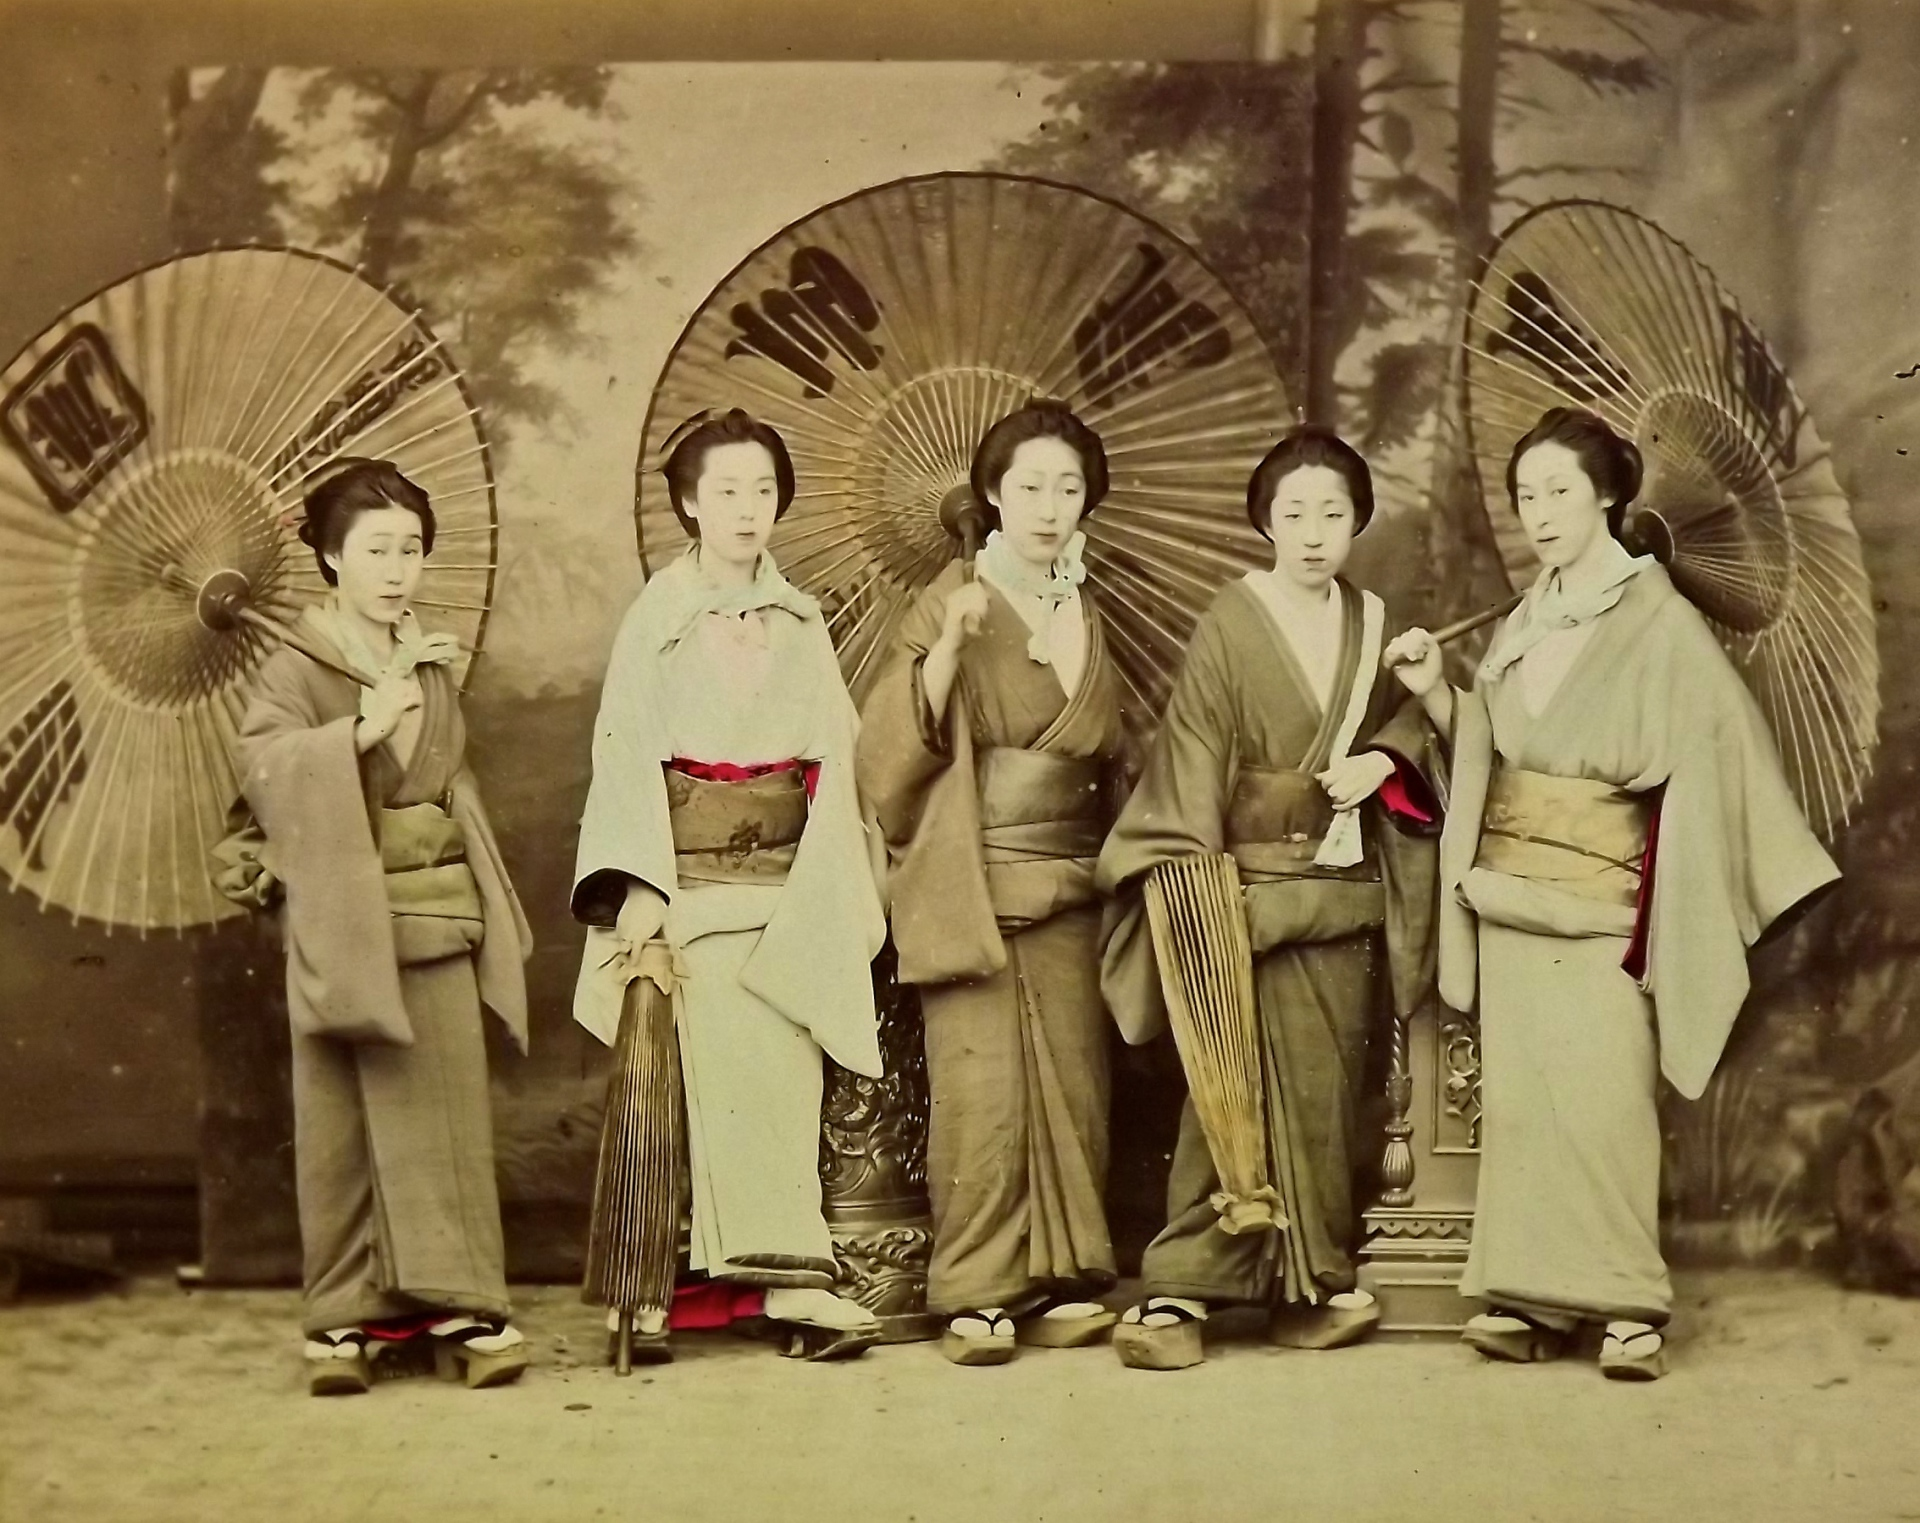 Antique hand-painted Japanese photograph